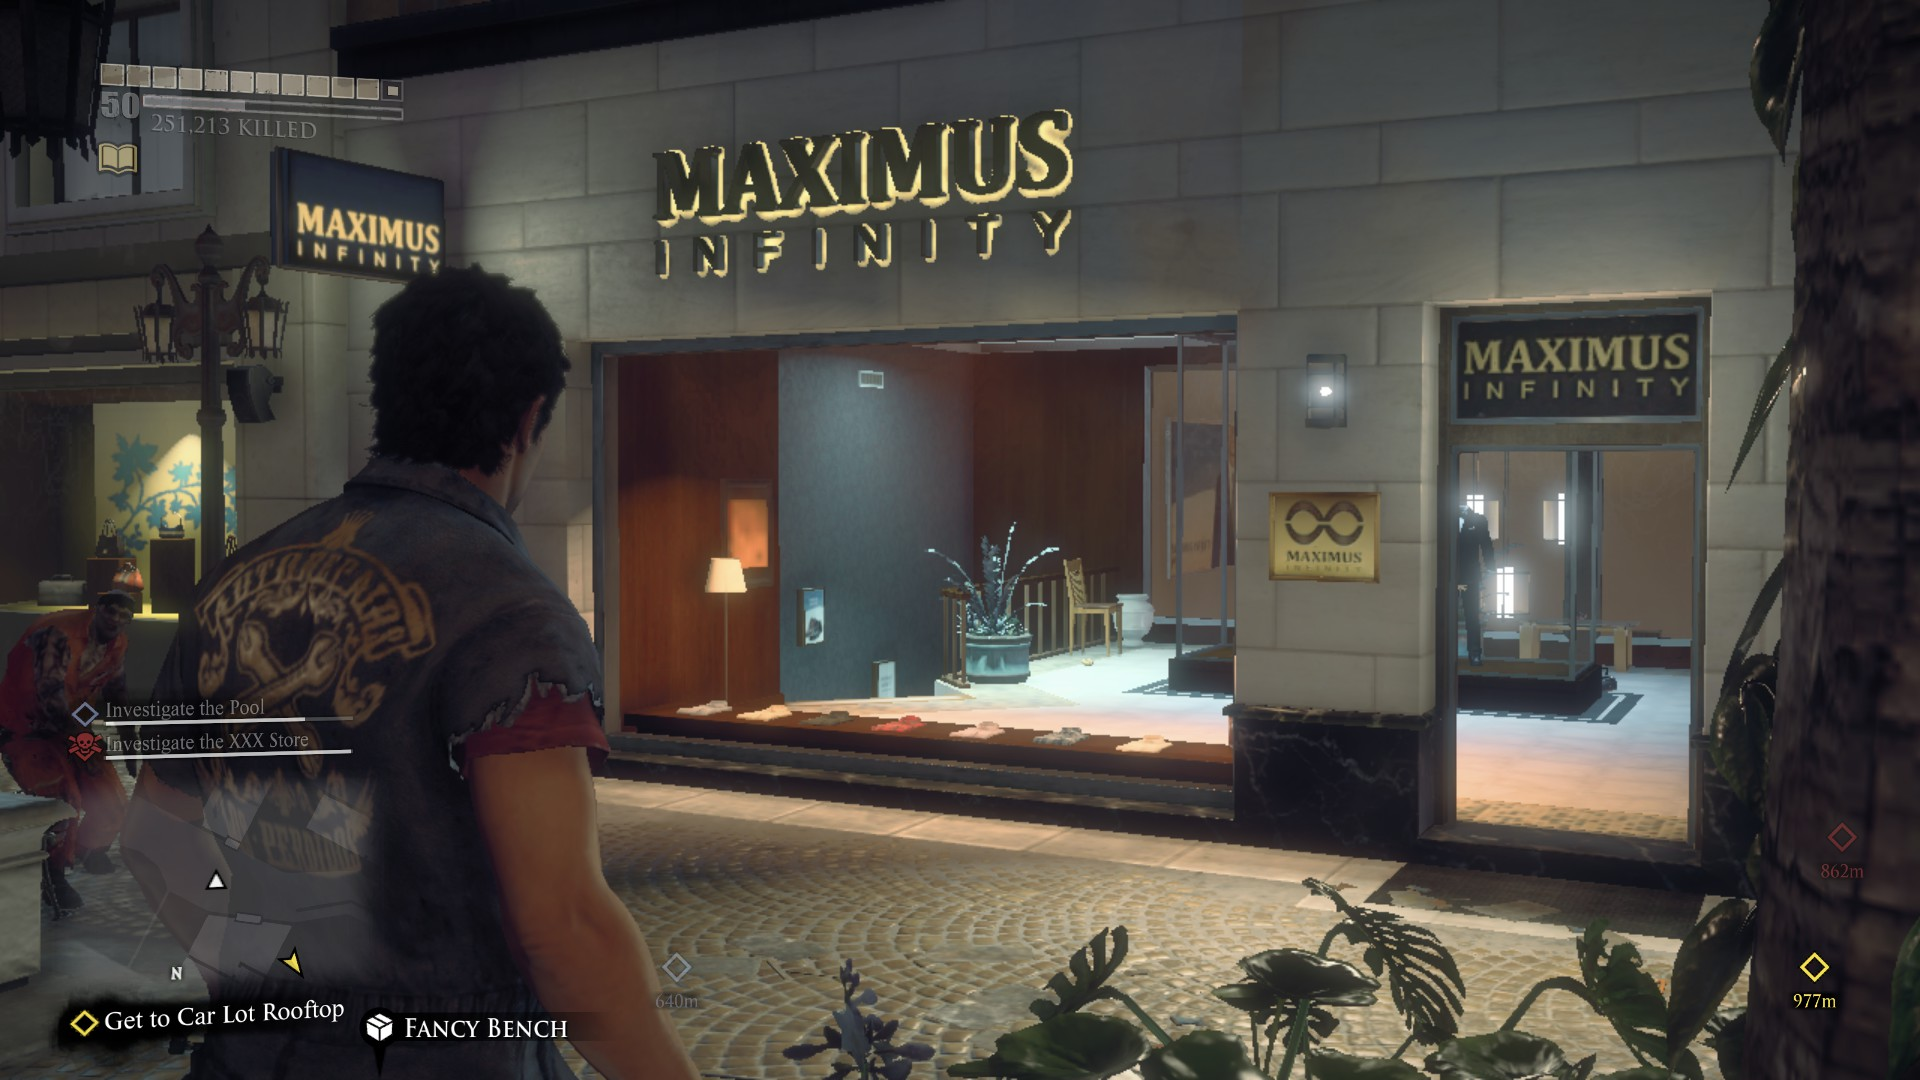 Maximus infinity dead rising 3 dead rising wiki fandom powered maximus infinity dead rising 3 malvernweather Image collections